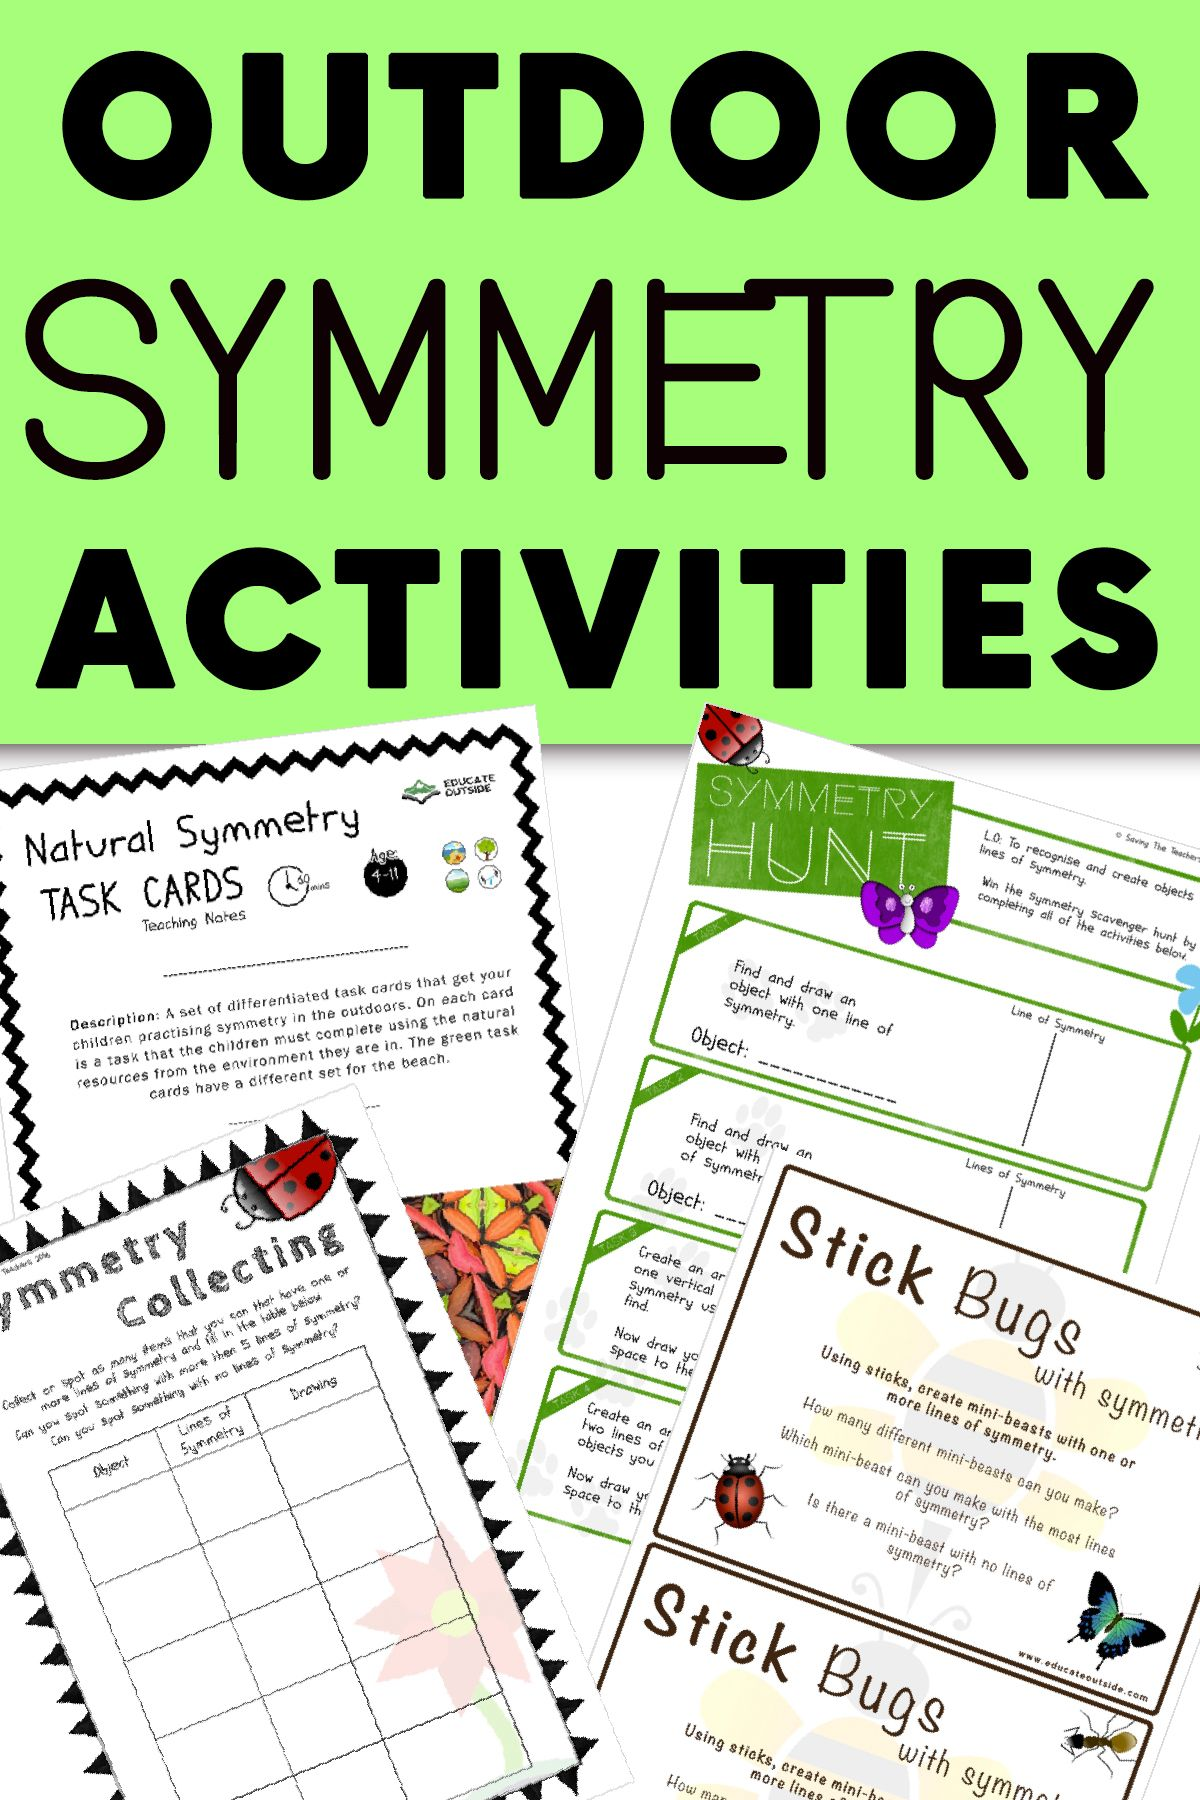 Outdoor Symmetry Activities With Images